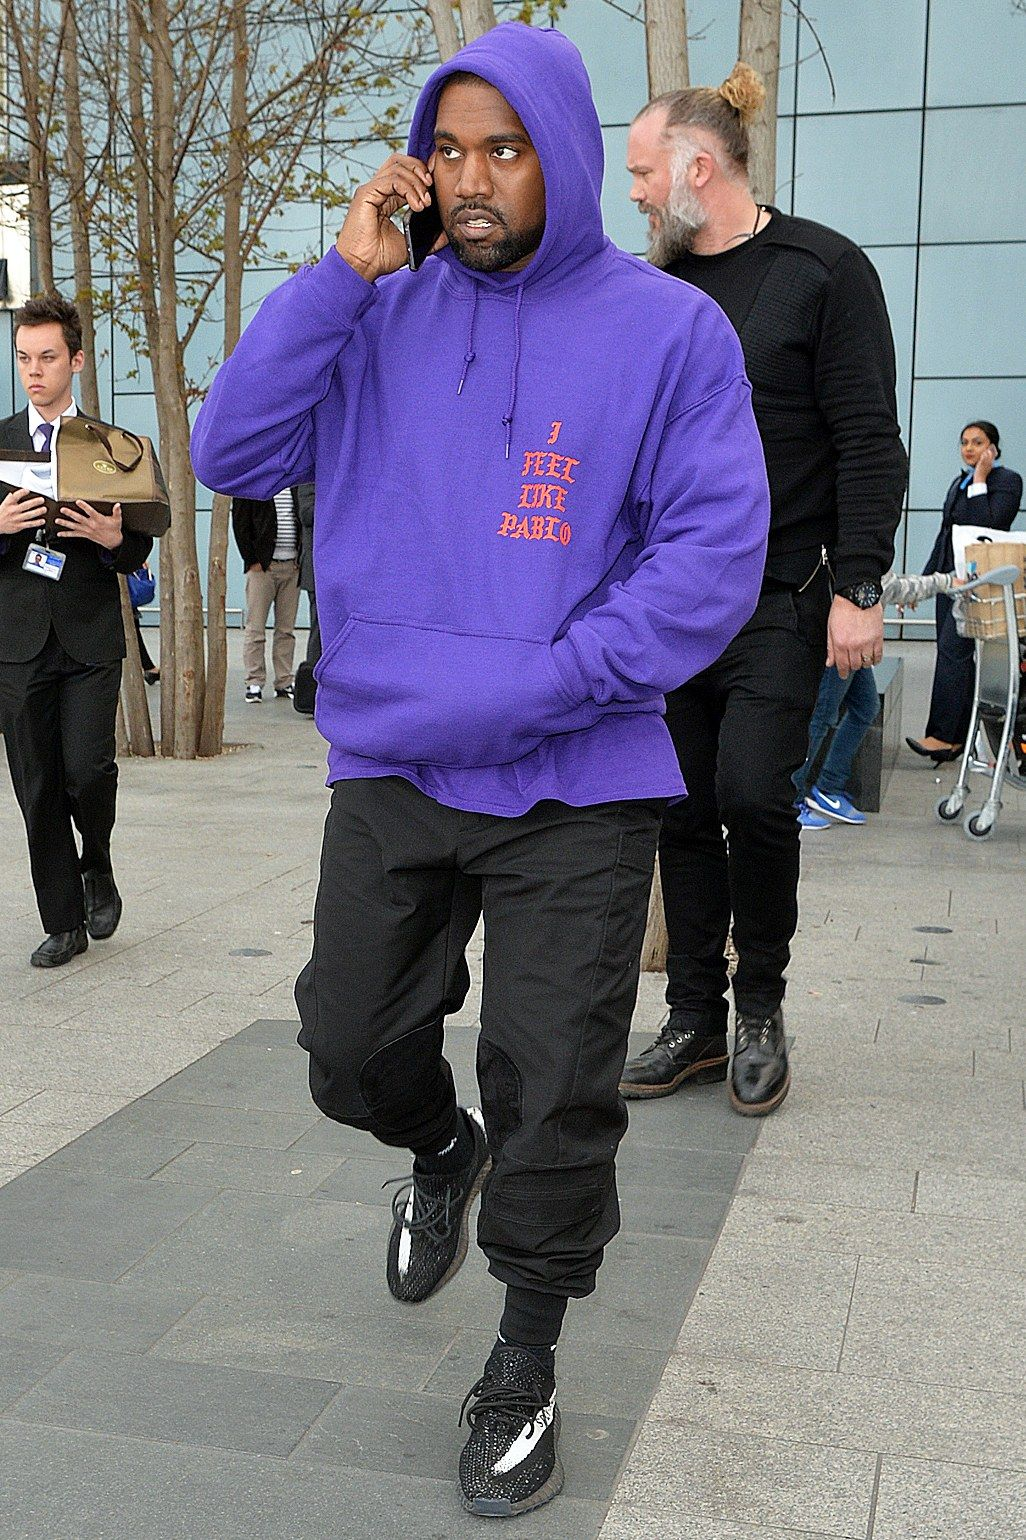 ce805db296701 At Heathrow International Airport in London. The Kanye West Look Book  Photos